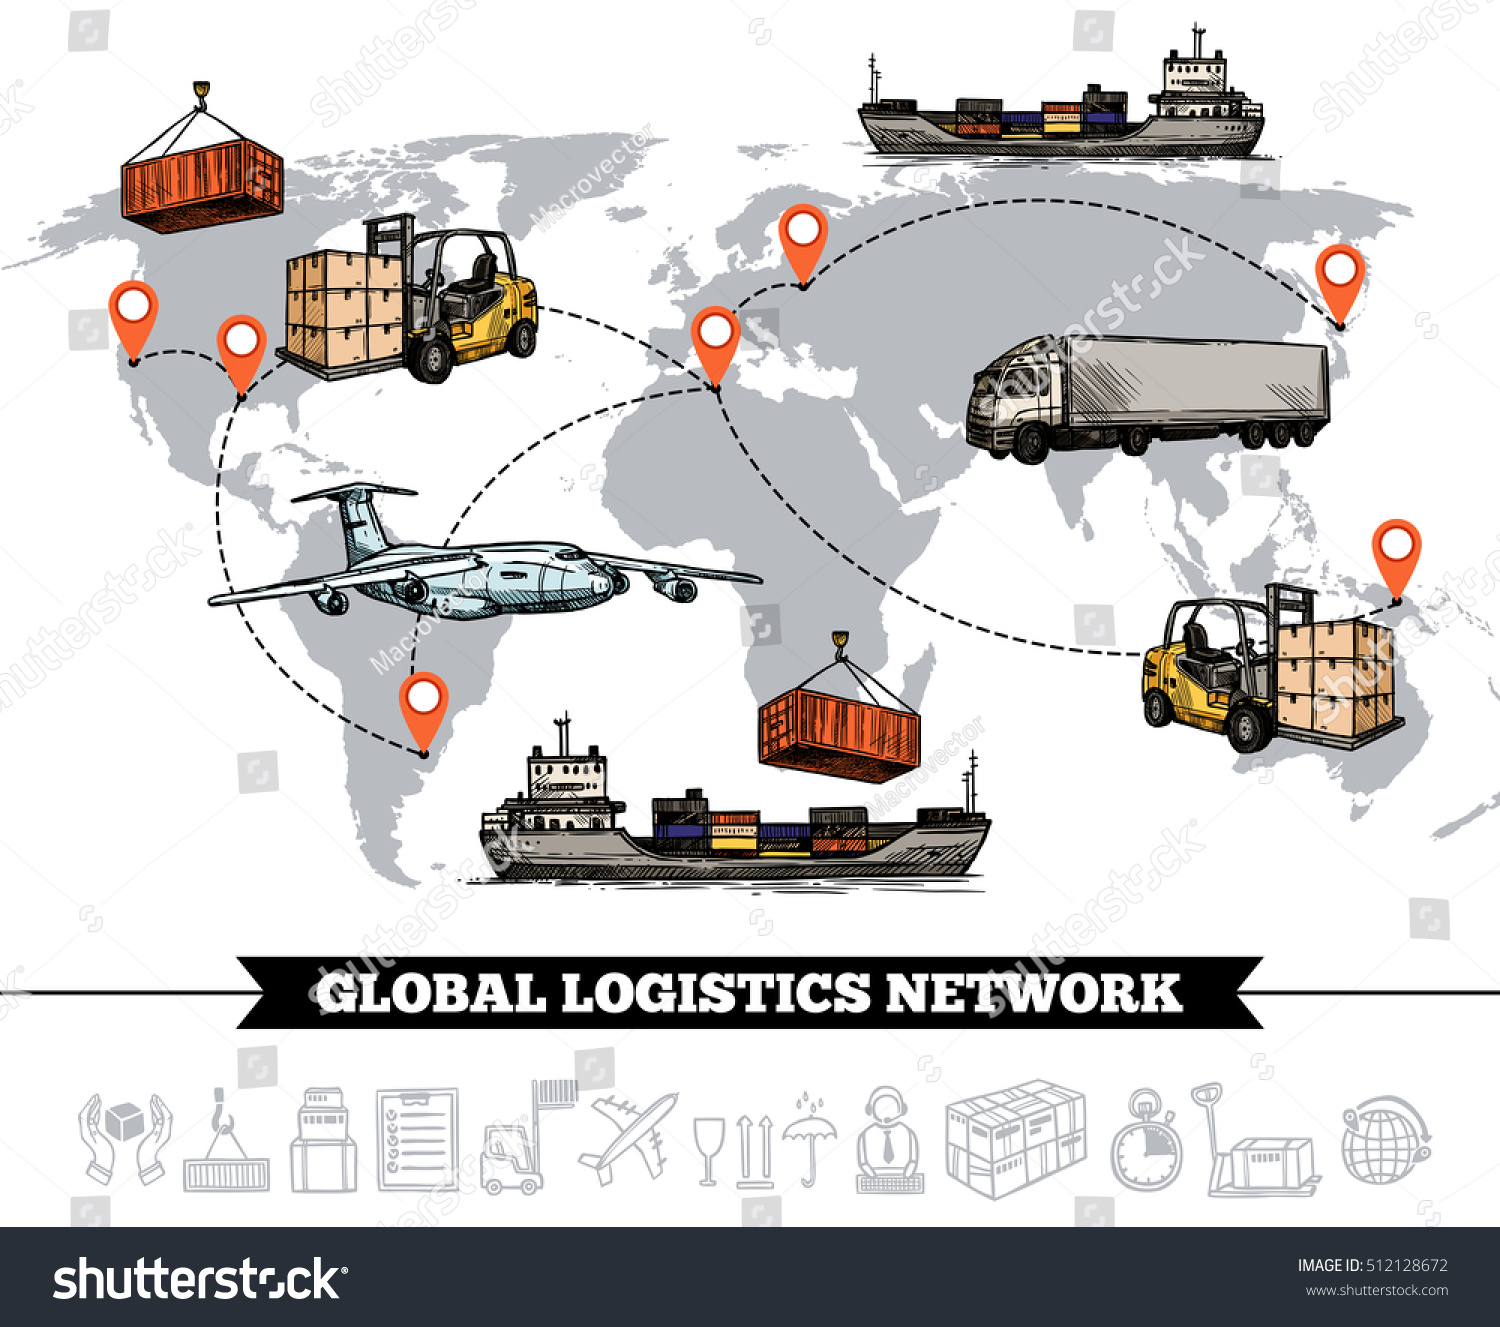 logistic network My name is nils, i am one of the directors & co-founders of the network  the  combined logistics network has matured into a sophisticed alliance of global.